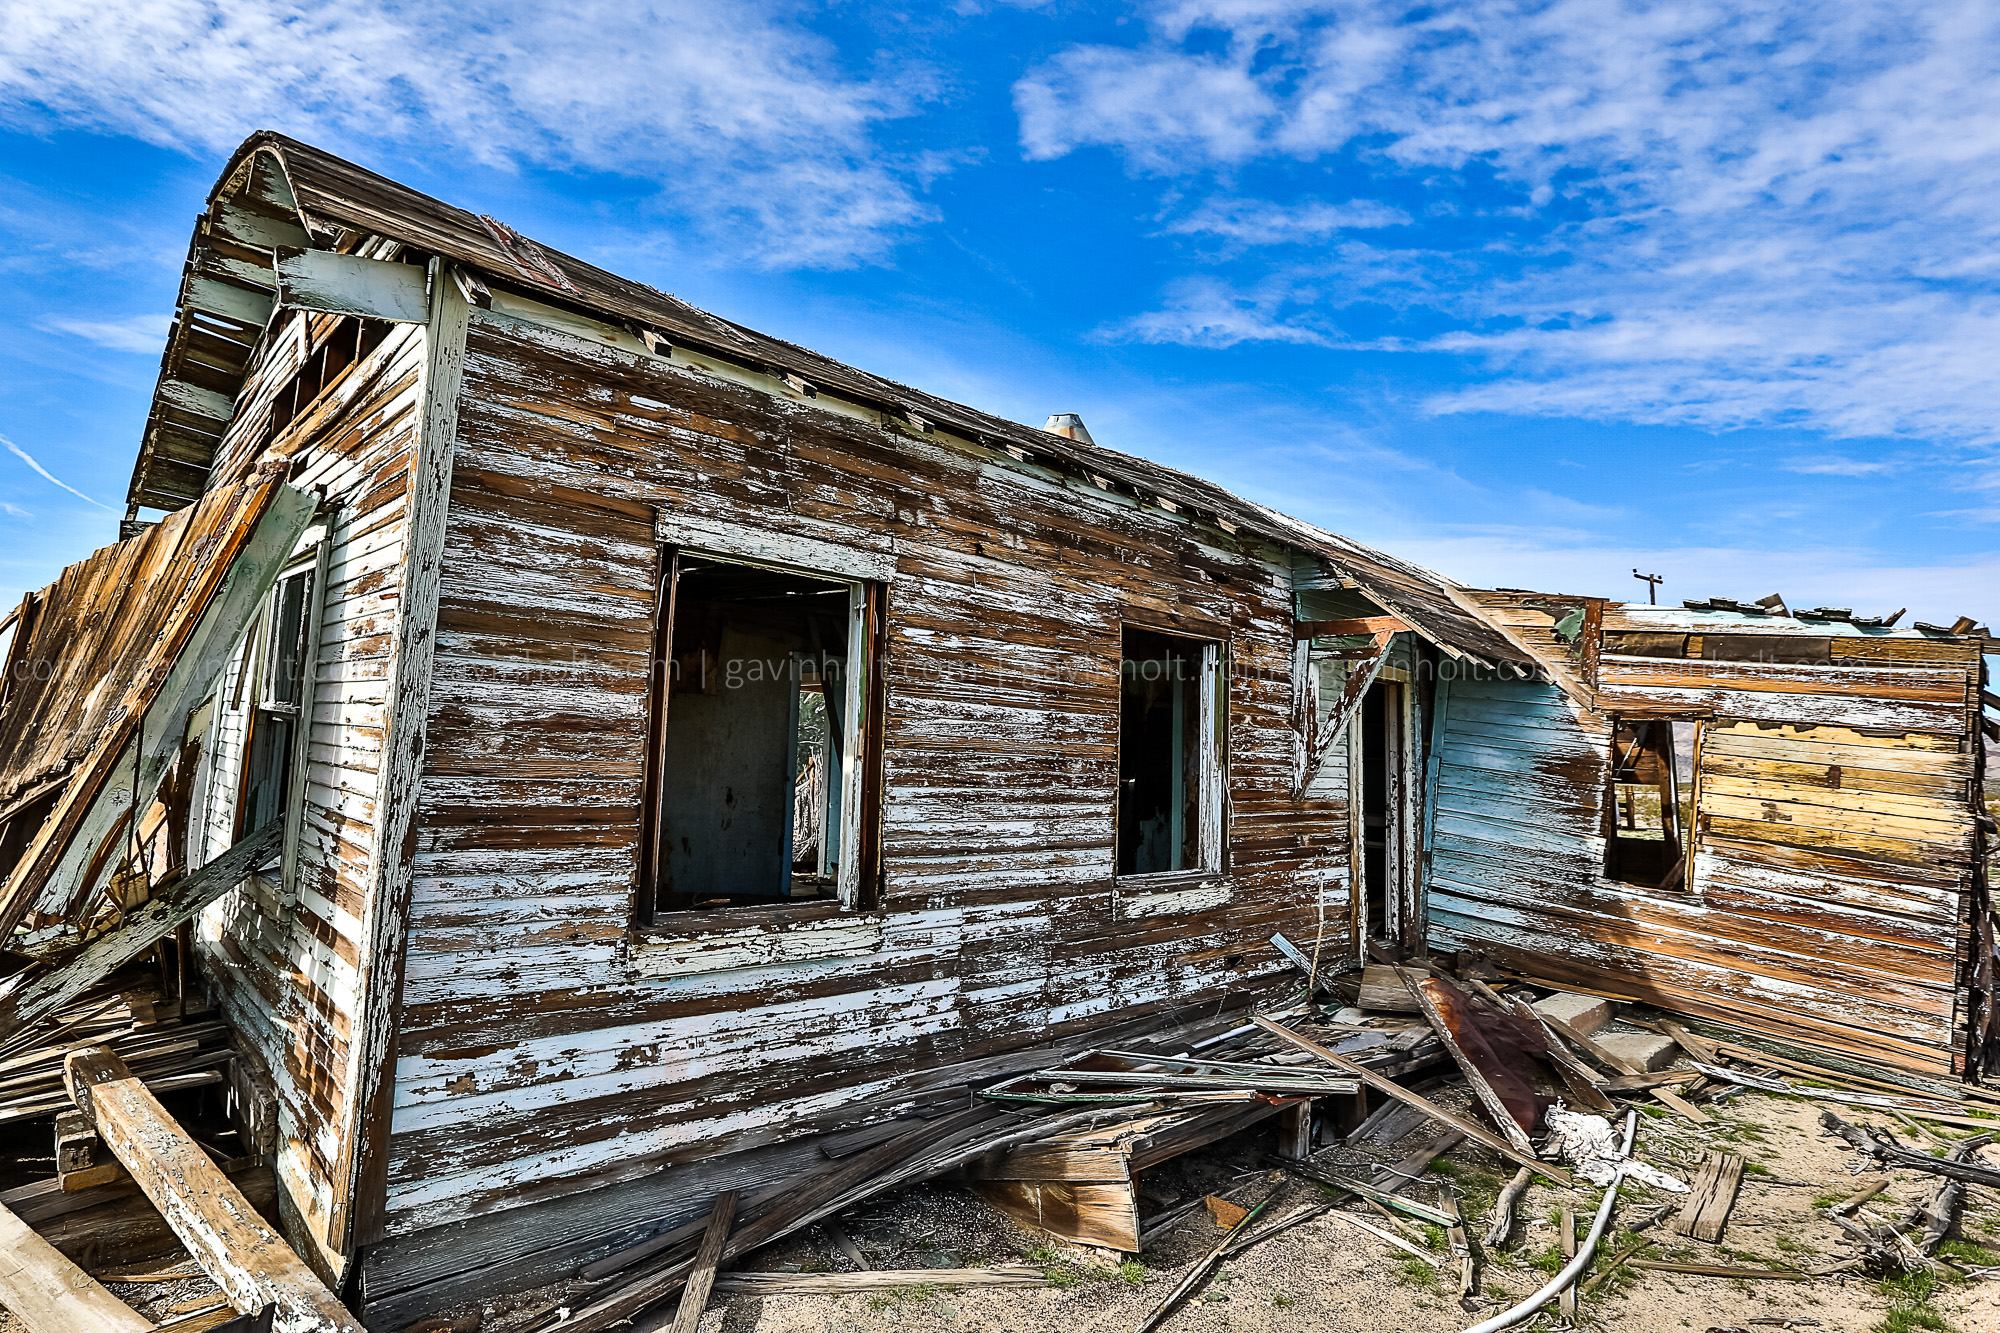 Abandoned House in the Mojave Desert